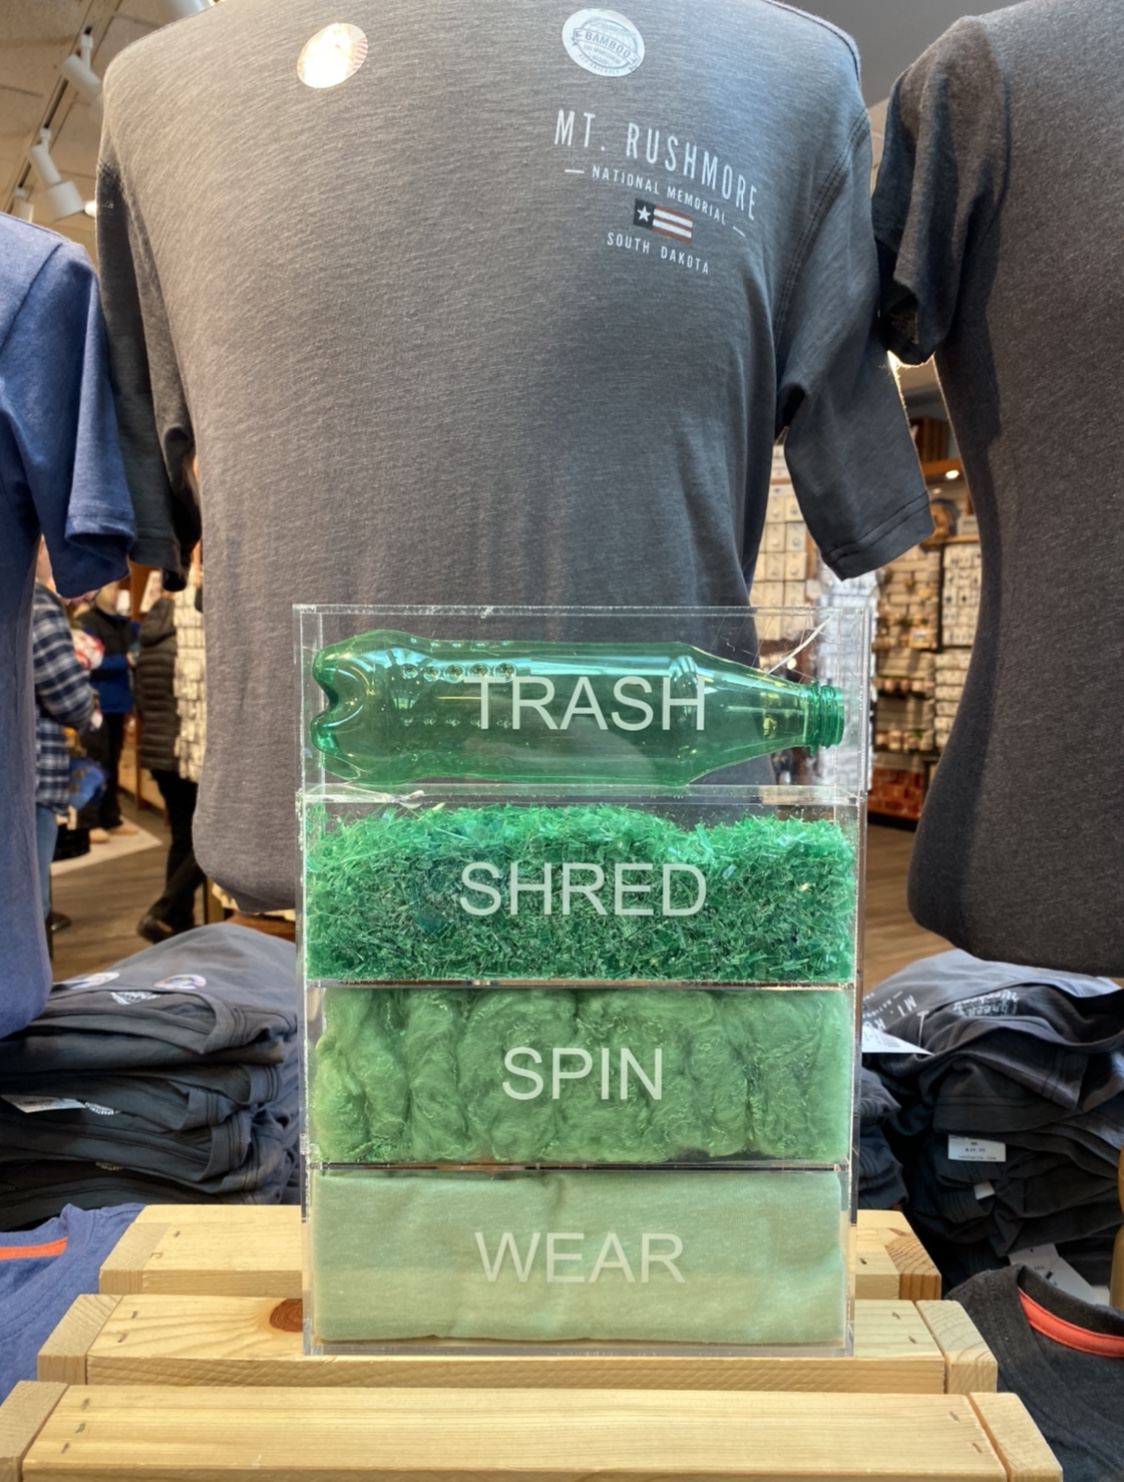 Shirts made from plastic bottles